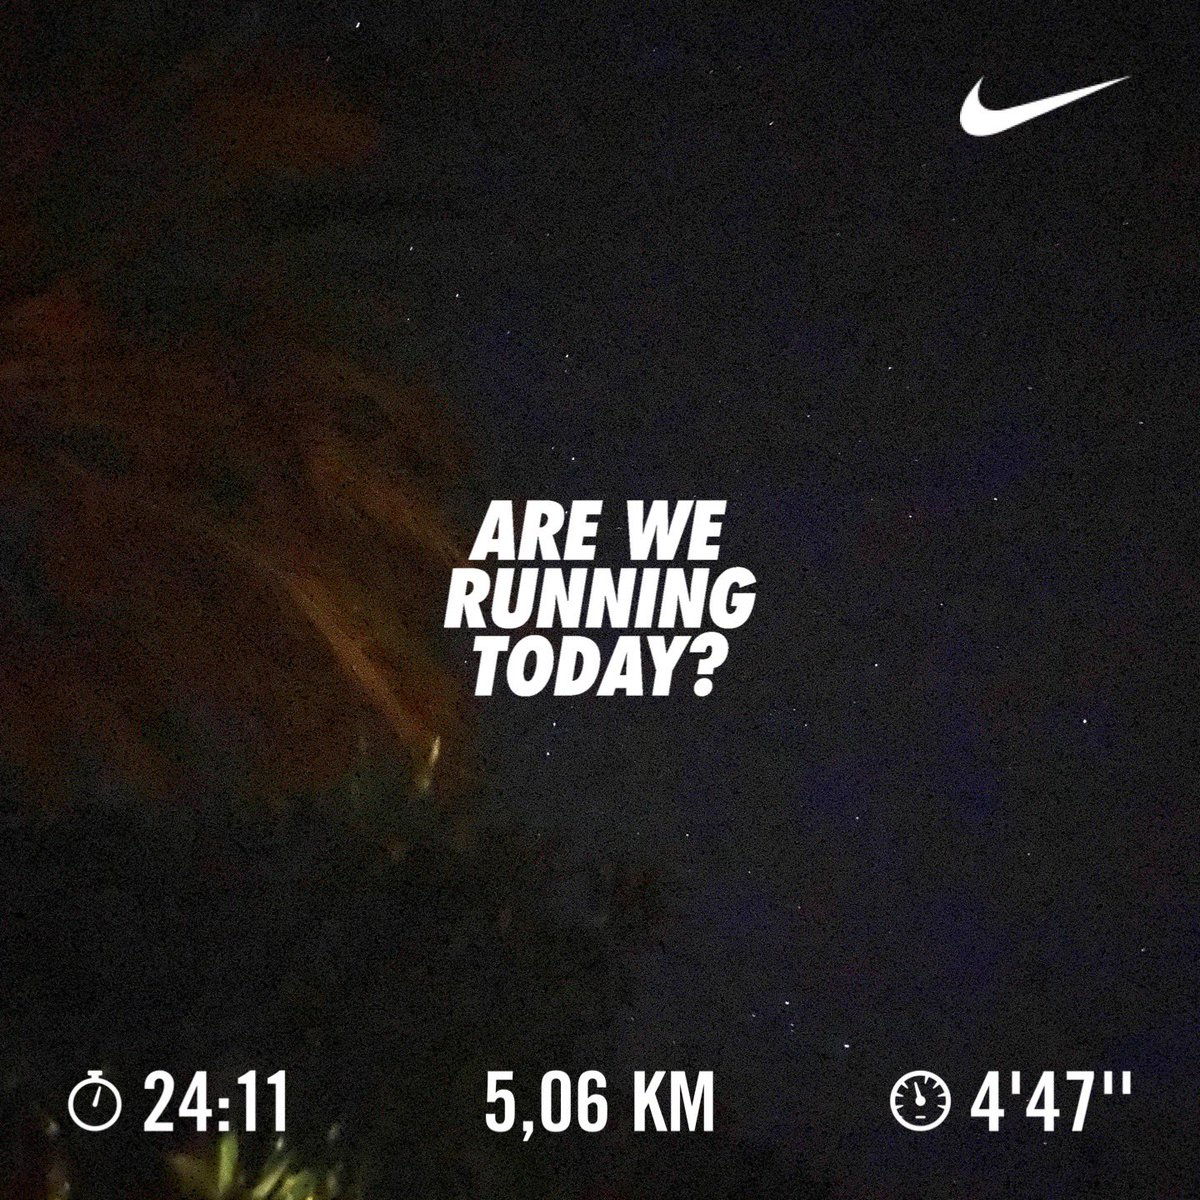 #AreWeRunningToday⁉️#Tuesday #Formentera #EstanyPudent #Run4Yourself👉🏻 #Harder💪🏻 #Stronger👊🏻 #RunWild🤟🏻 #NikePlus🏃🏻‍♂️ #JustDoIt✔️ #SumandoKms➕ #FeinaFeta✅ #Happy☺️ #Healthy❤️